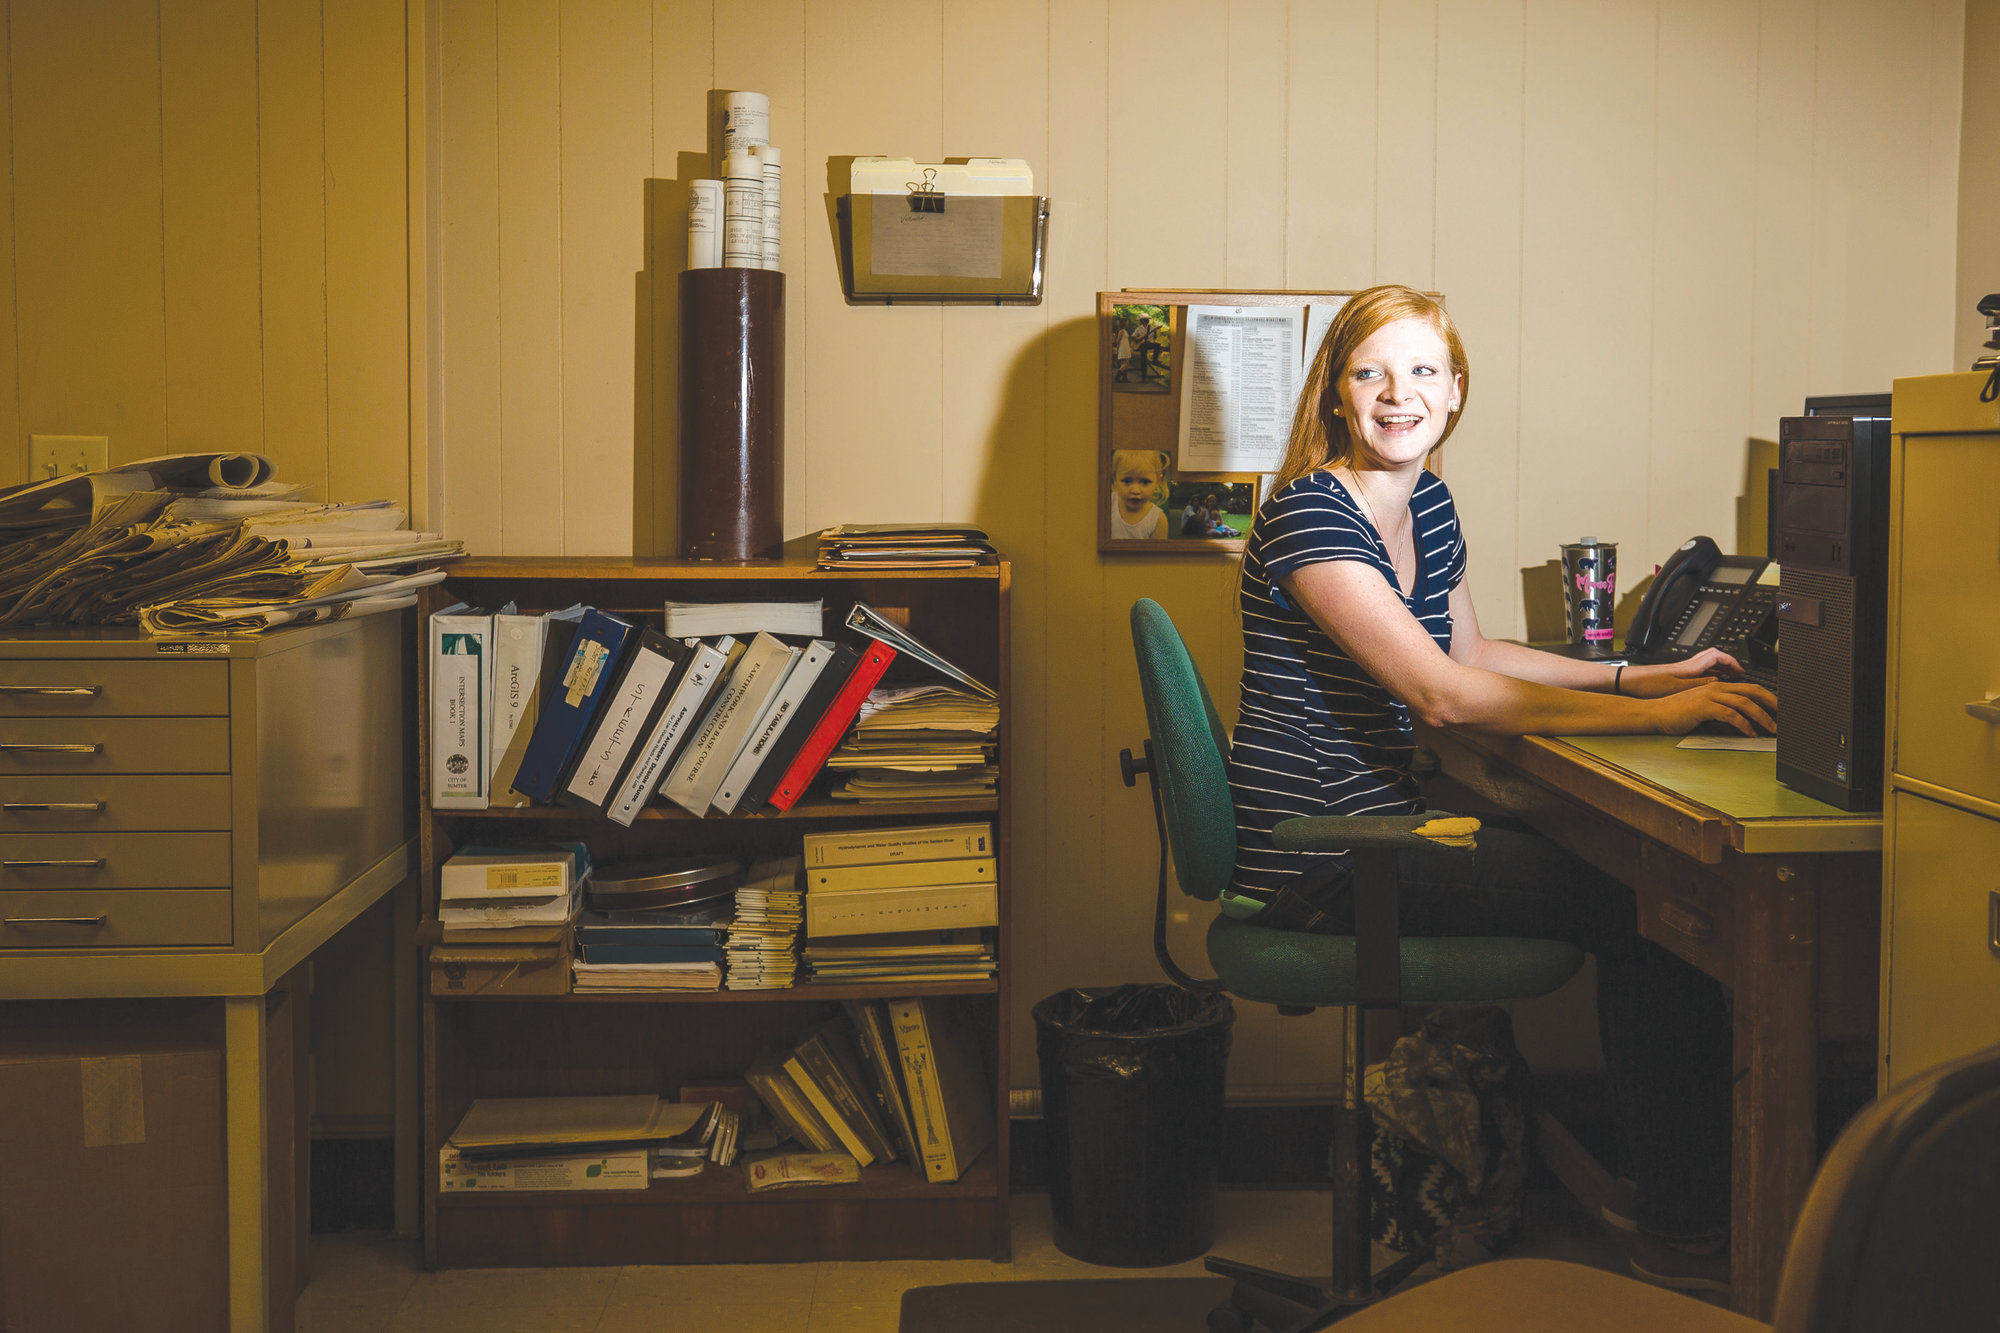 Kristen Nygaard sits at her desk Wednesday. Nygaard, 21, is the youngest employee in the City of Sumter Engineering Department. She got an associate degree at Central Carolina Technical College in Engineering Design Technology.